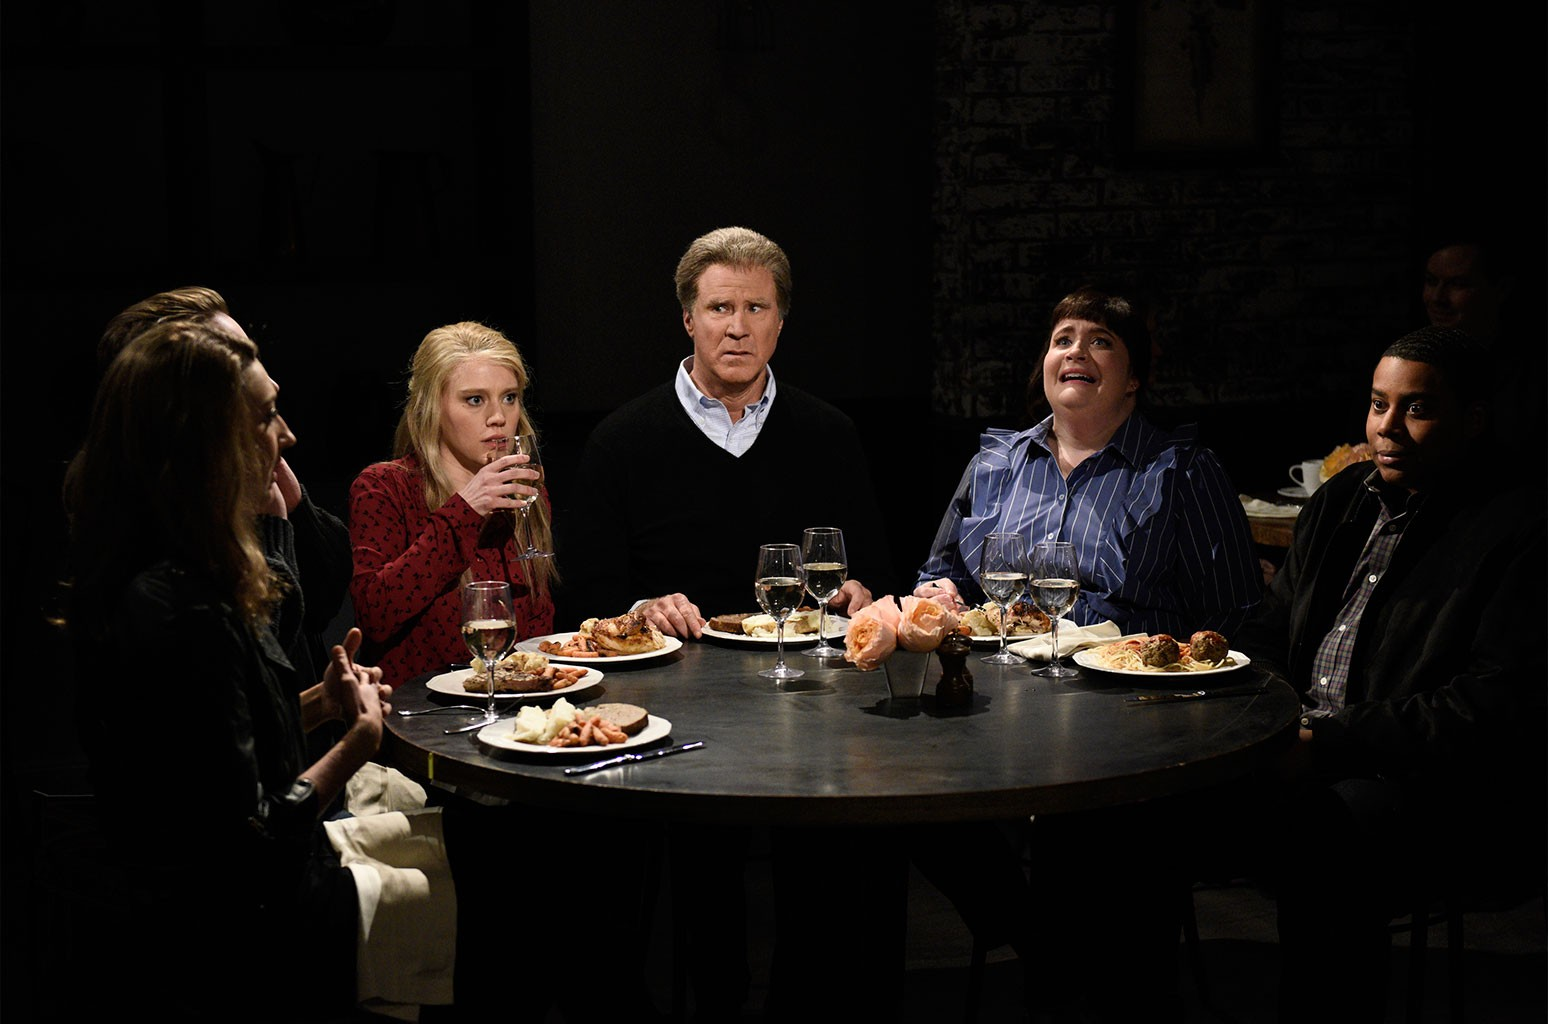 """Kate McKinnon, Will Ferrell as Jason, Aidy Bryant, Kenan Thompson during """"Dinner Discussion"""" in Studio 8H on Jan. 27, 2018 Saturday Night Live."""